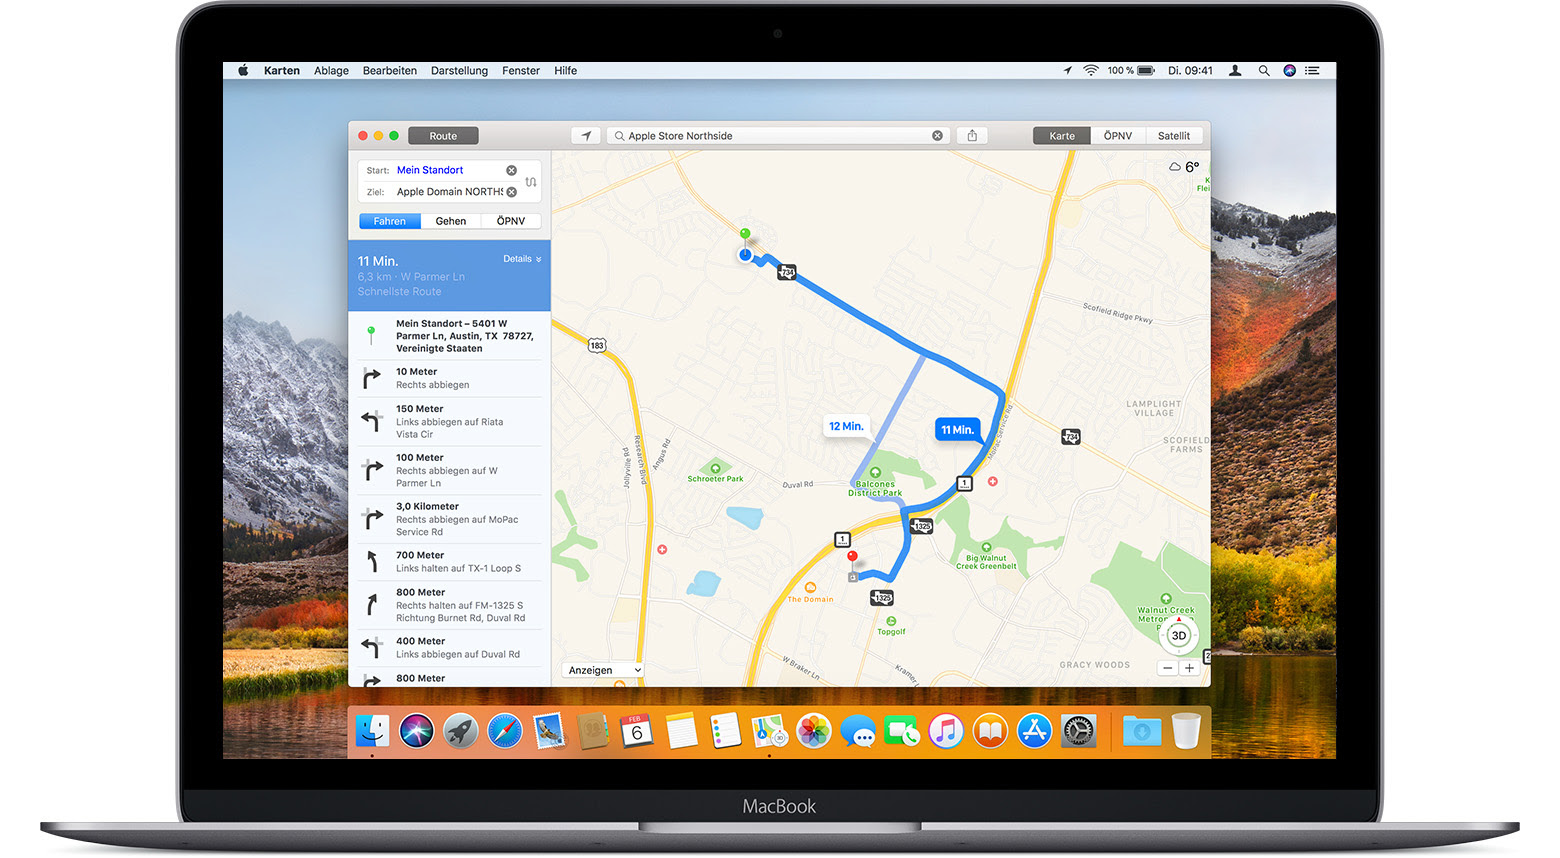 Iphone How To Change Navigation Volume In Apple Maps